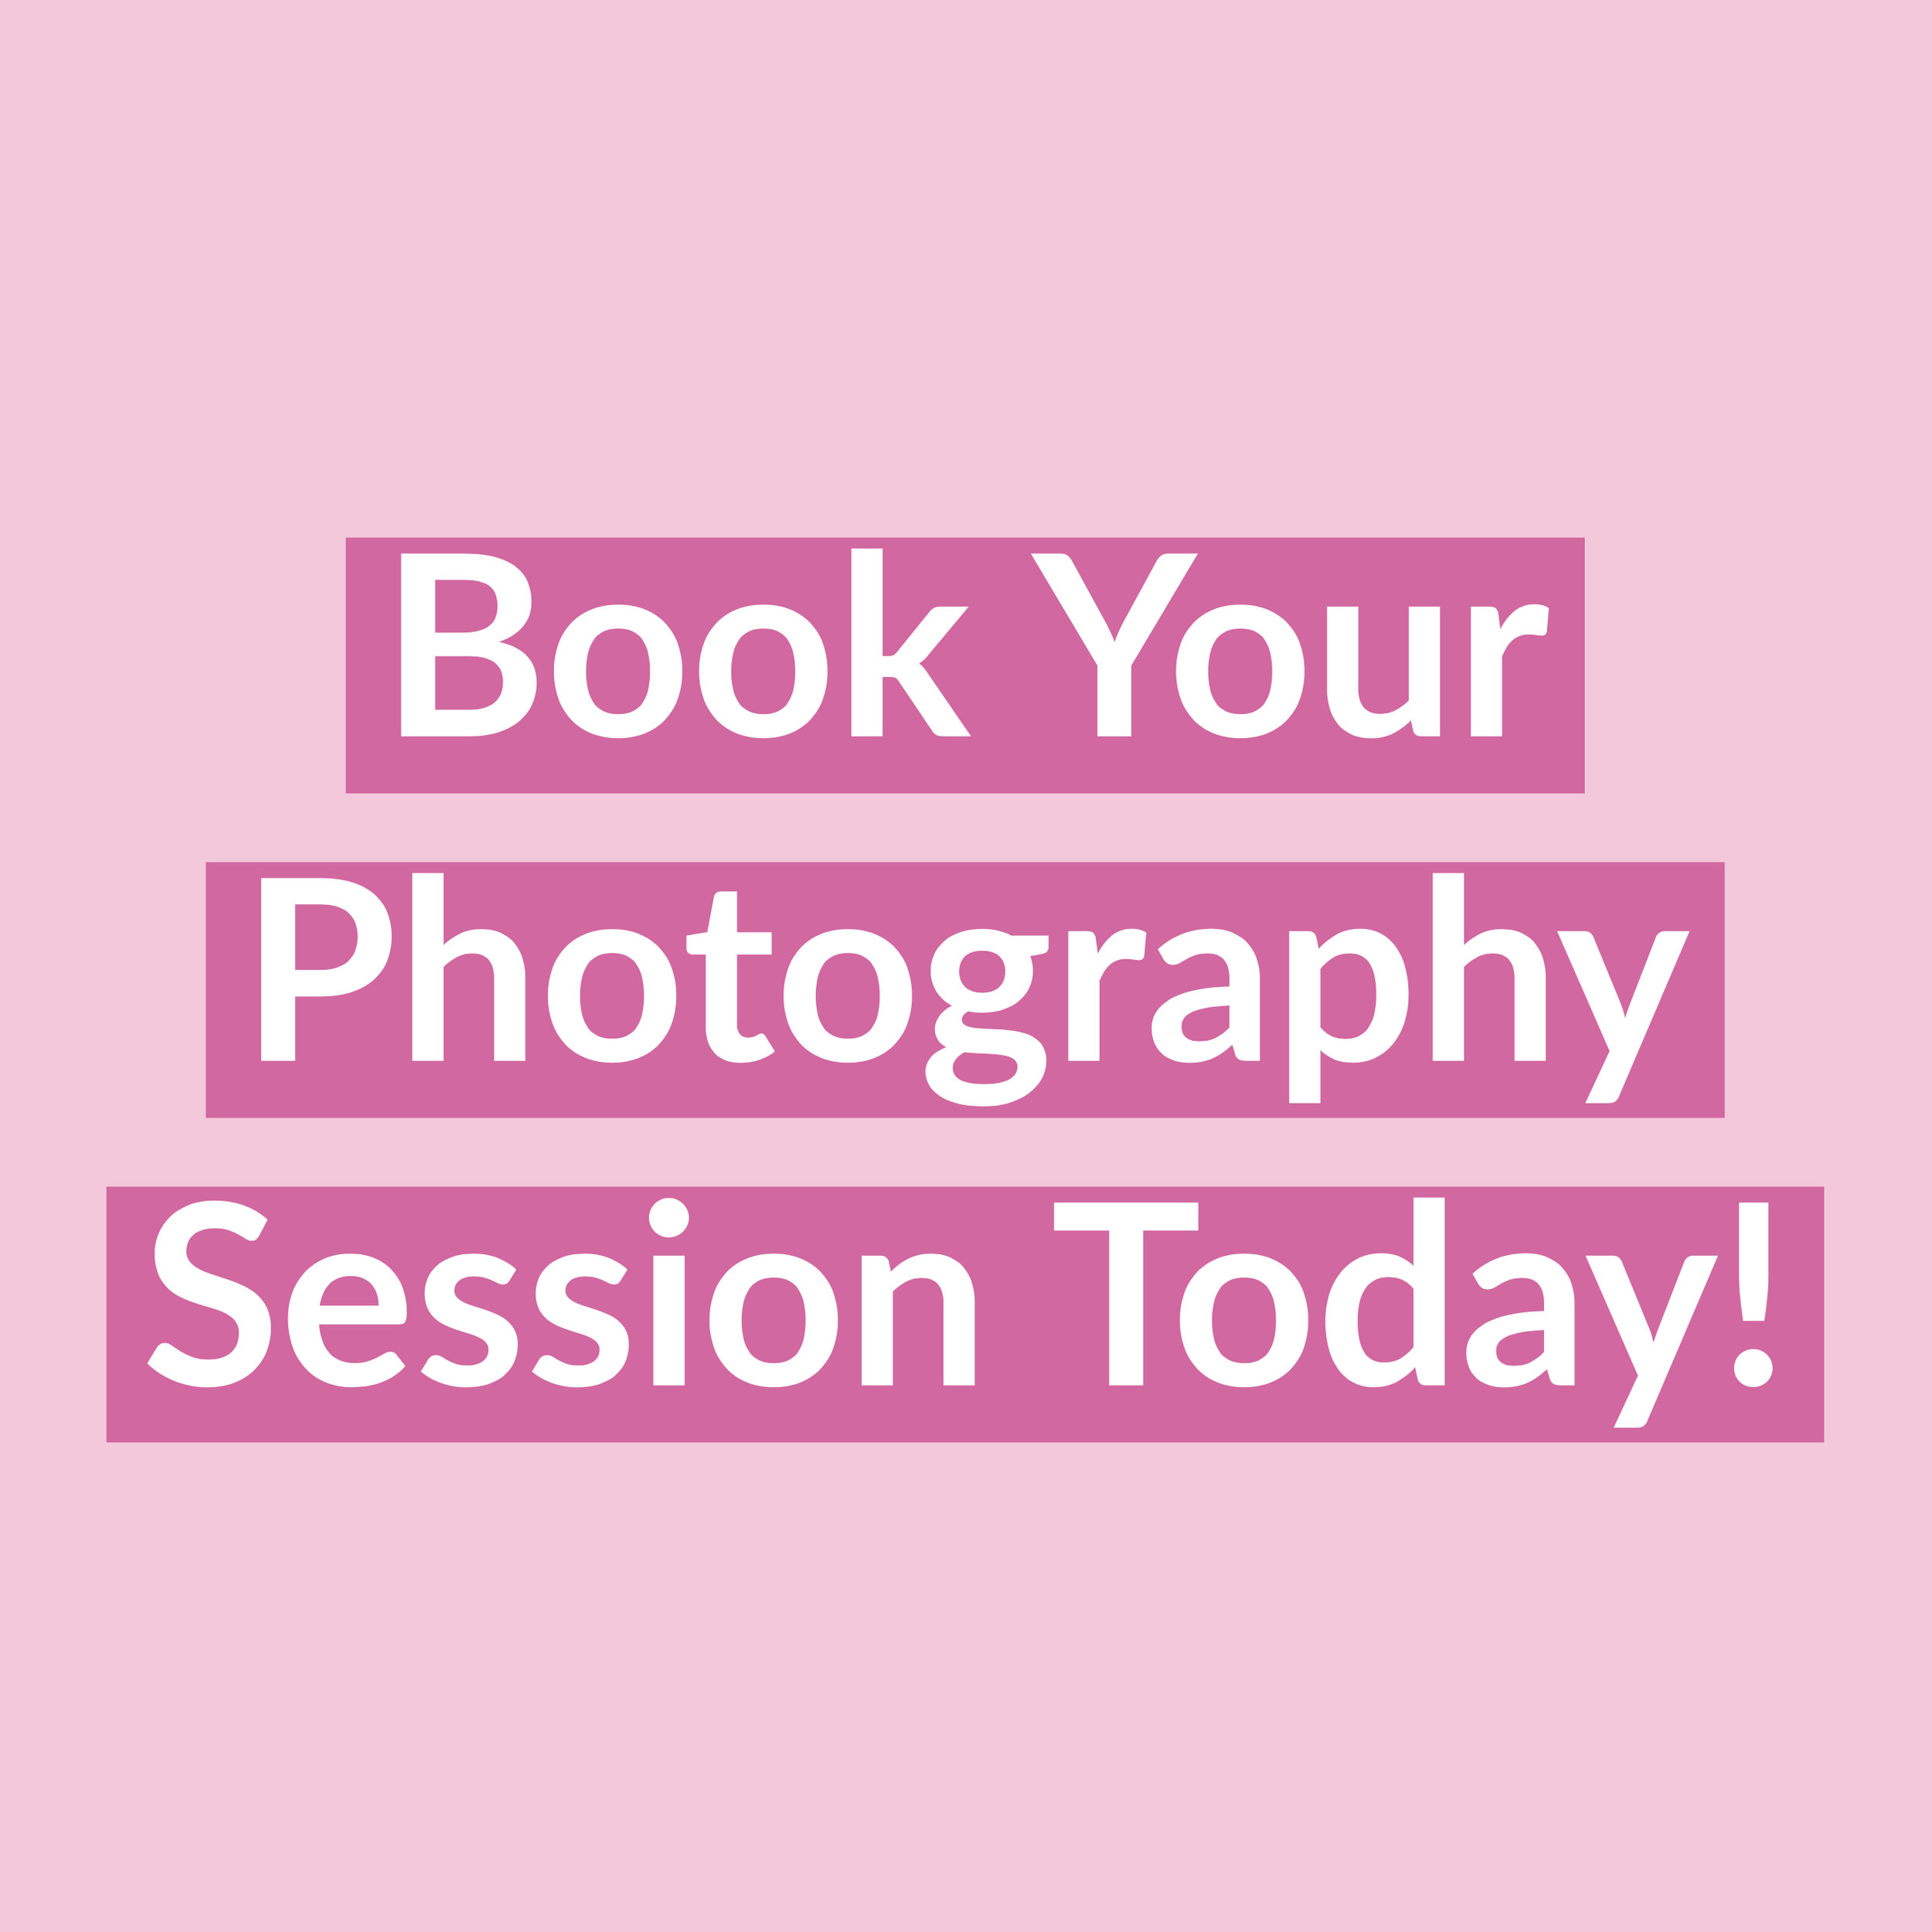 Book Your Session Today-3.jpg